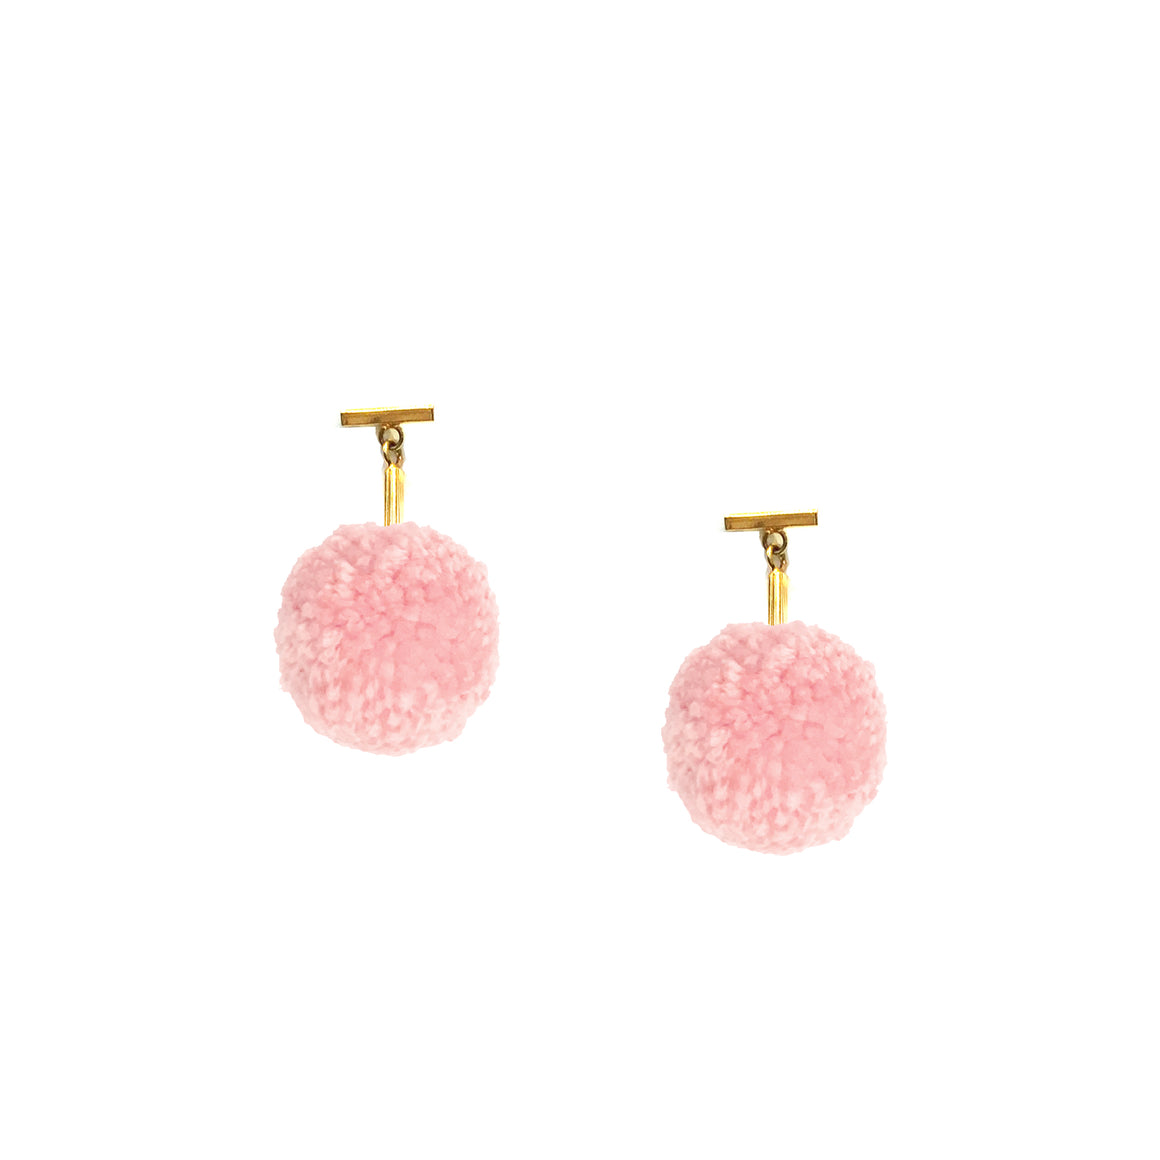 "Soft Pink 1"" Yarn Pom Pom T Stud Earrings"